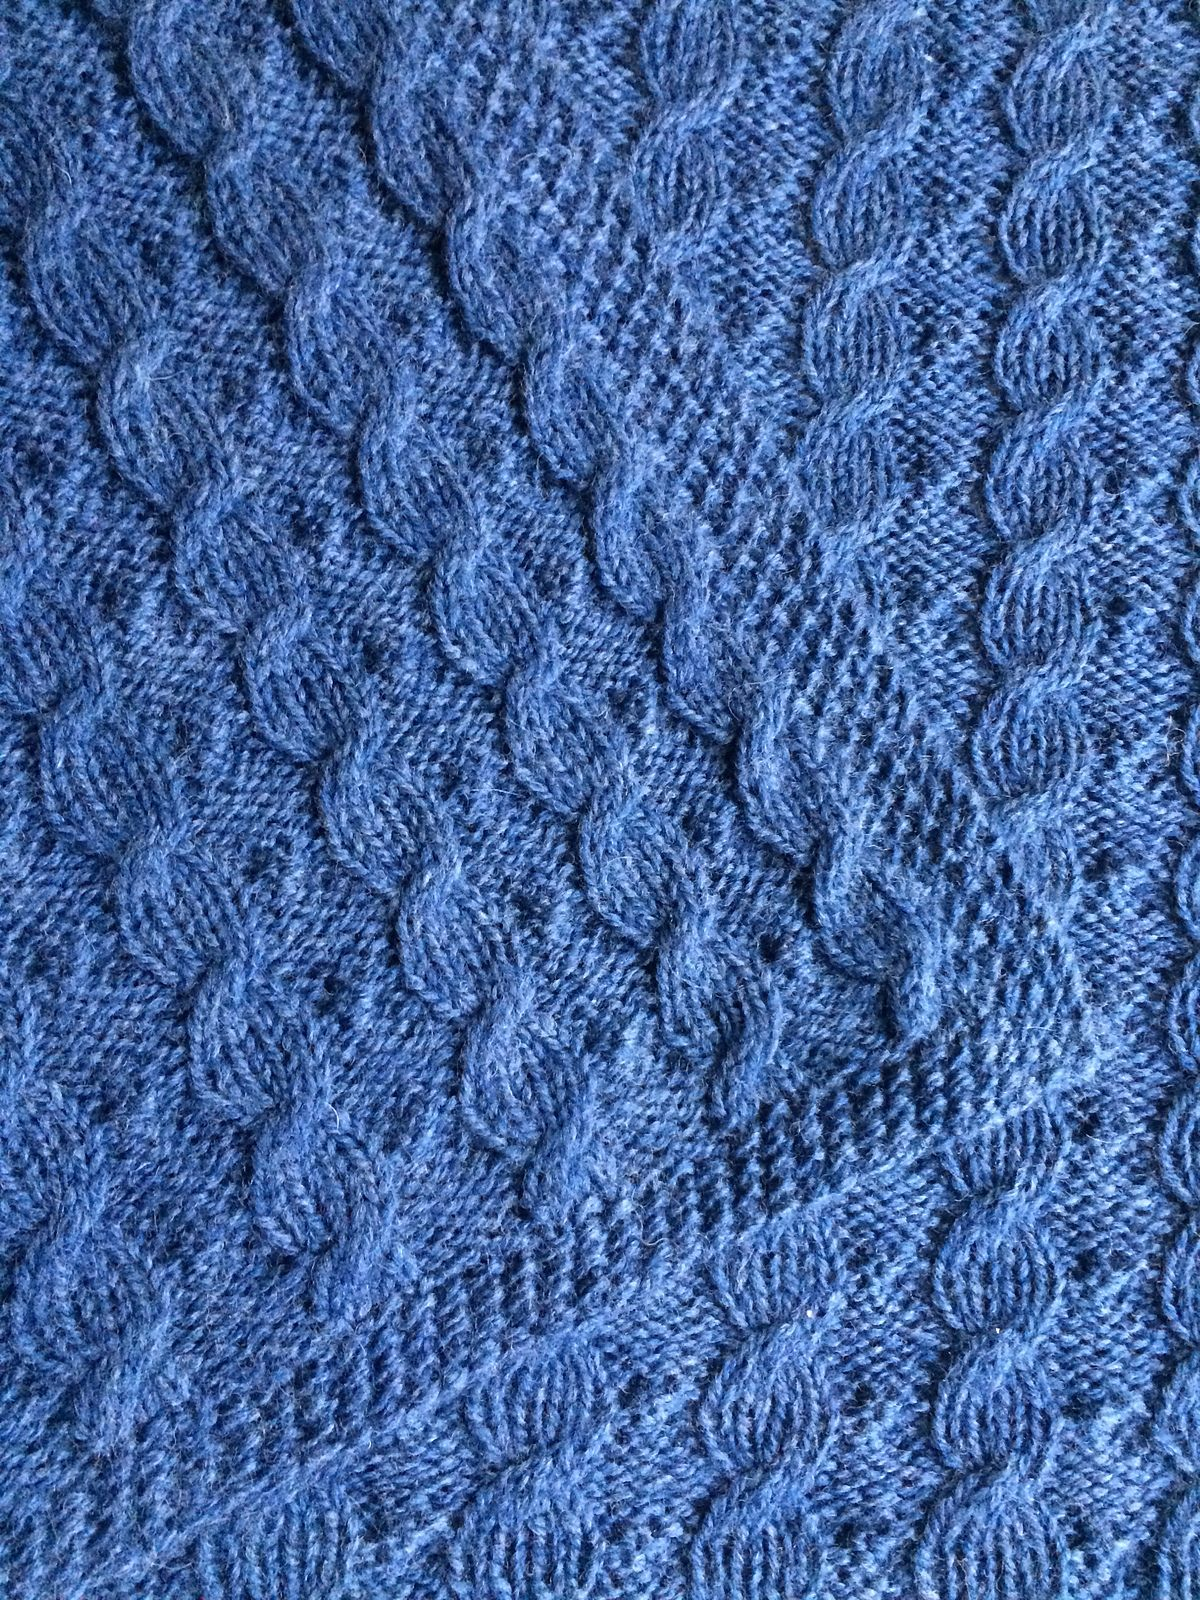 Reversible cable knitting patterns knitting patterns blanket and free knitting pattern for reversible cable baby blanket dt1010fo